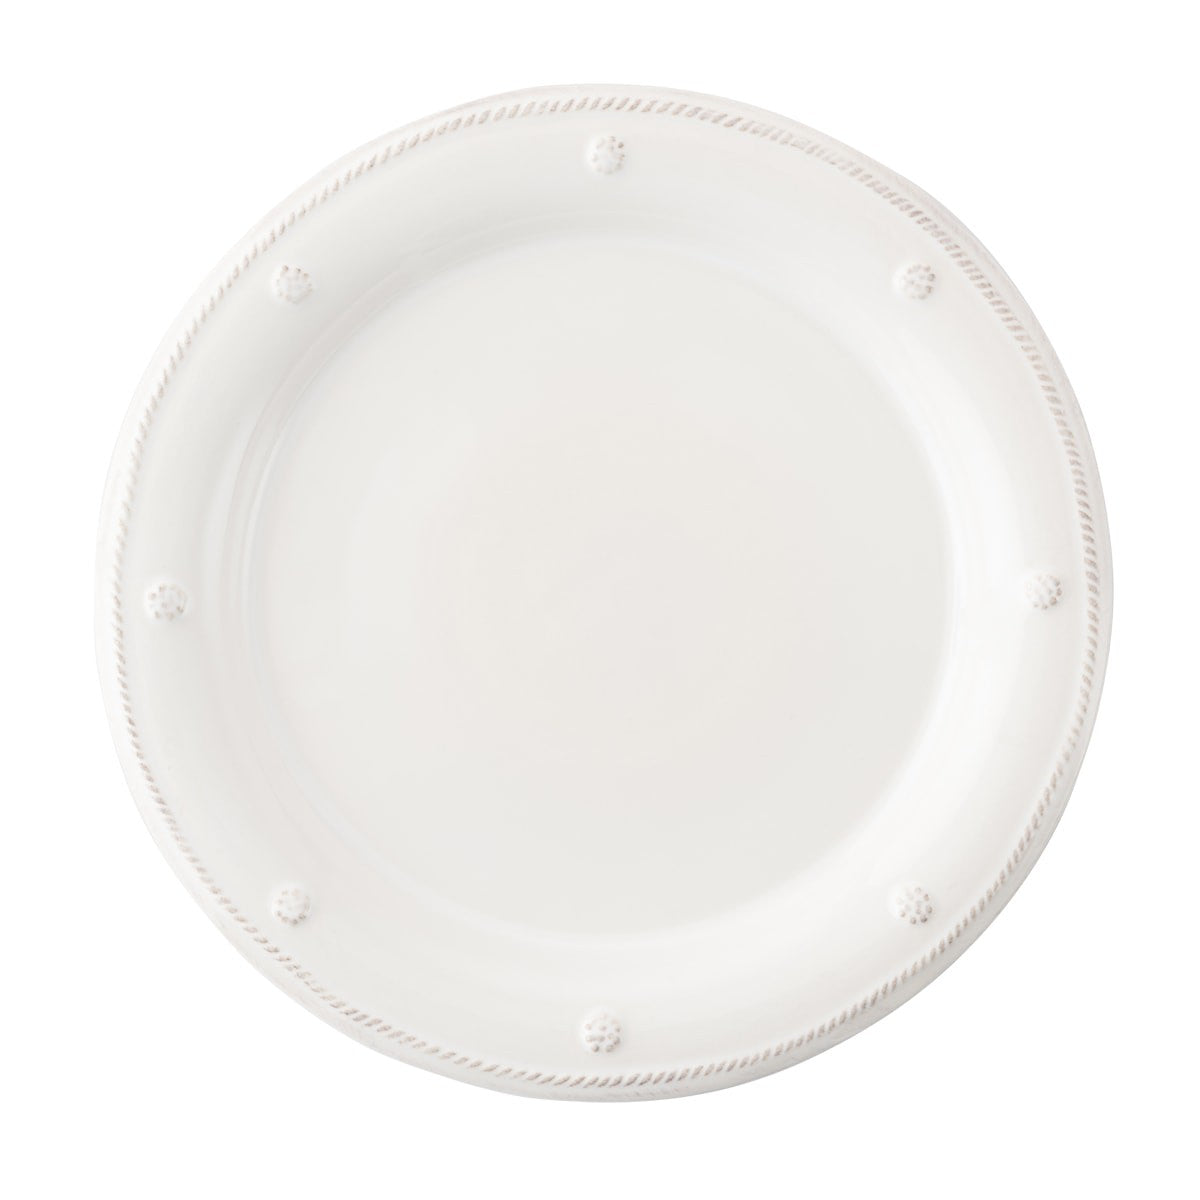 Juliska - Berry & Thread Whitewash Dinner Plate